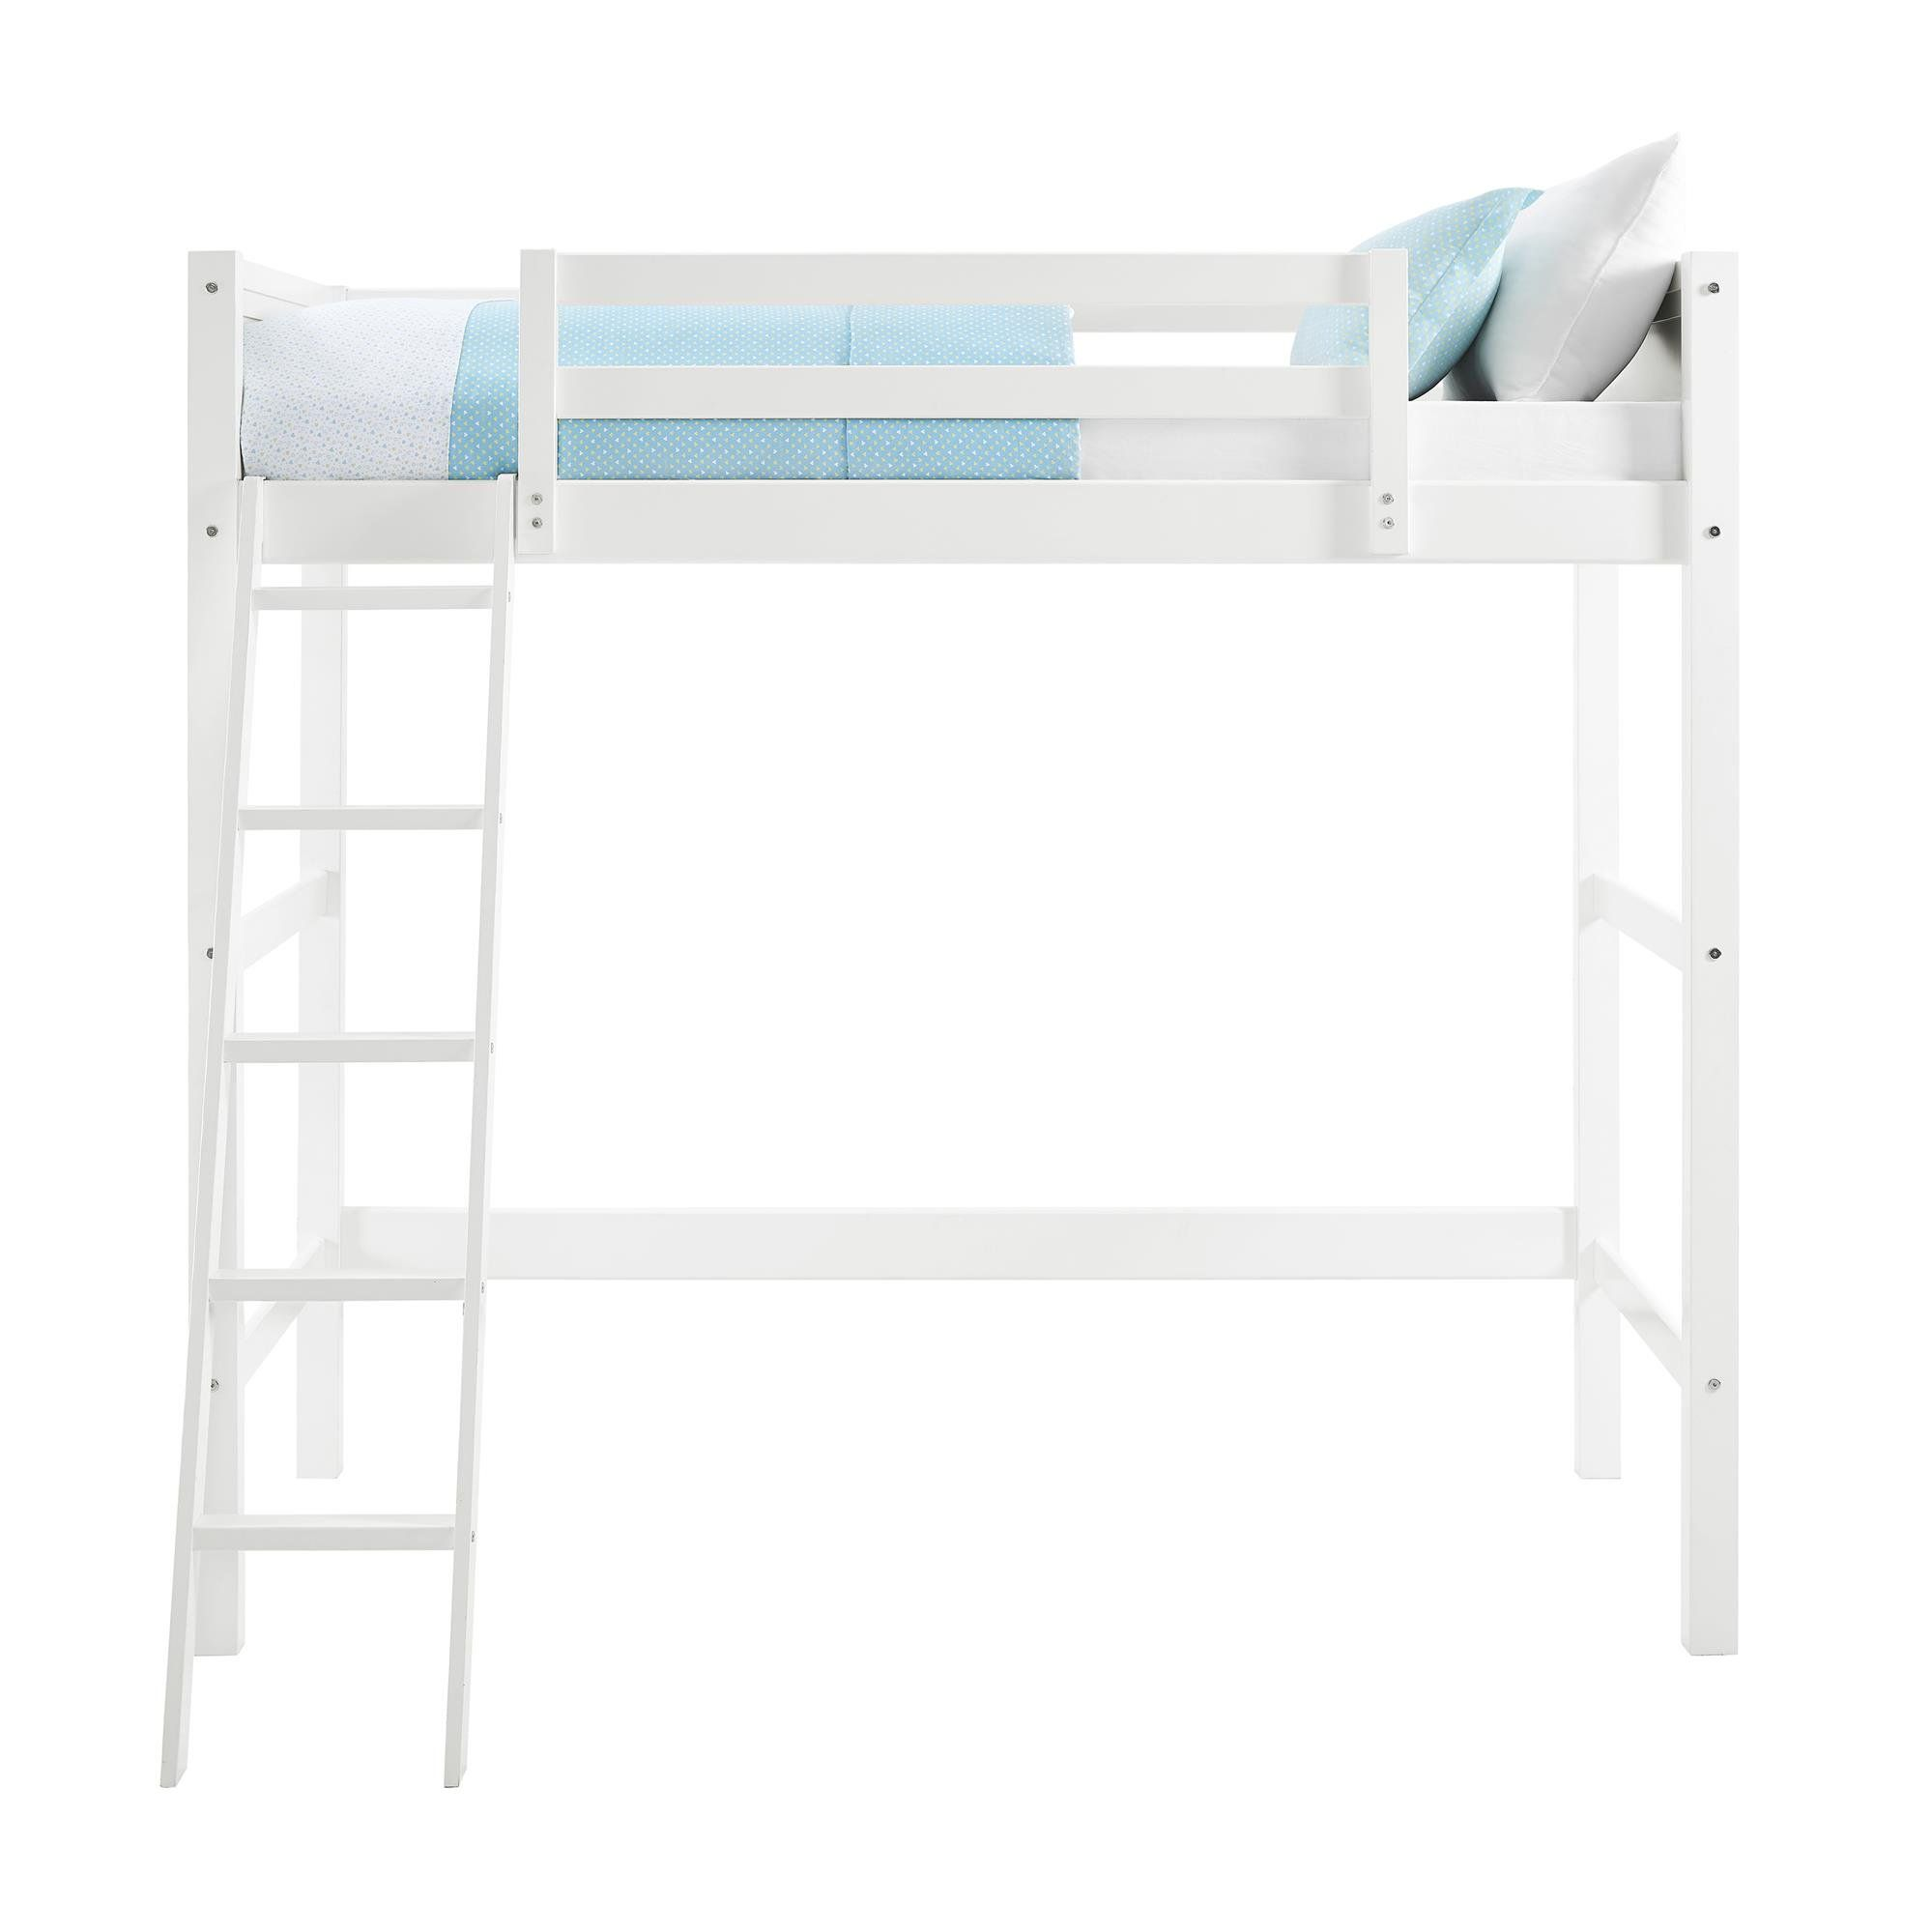 Your Zone Kids Wooden Loft Bed With Ladder Full White Walmart Com In 2021 Twin Loft Bed Loft Bed Loft Bed Frame